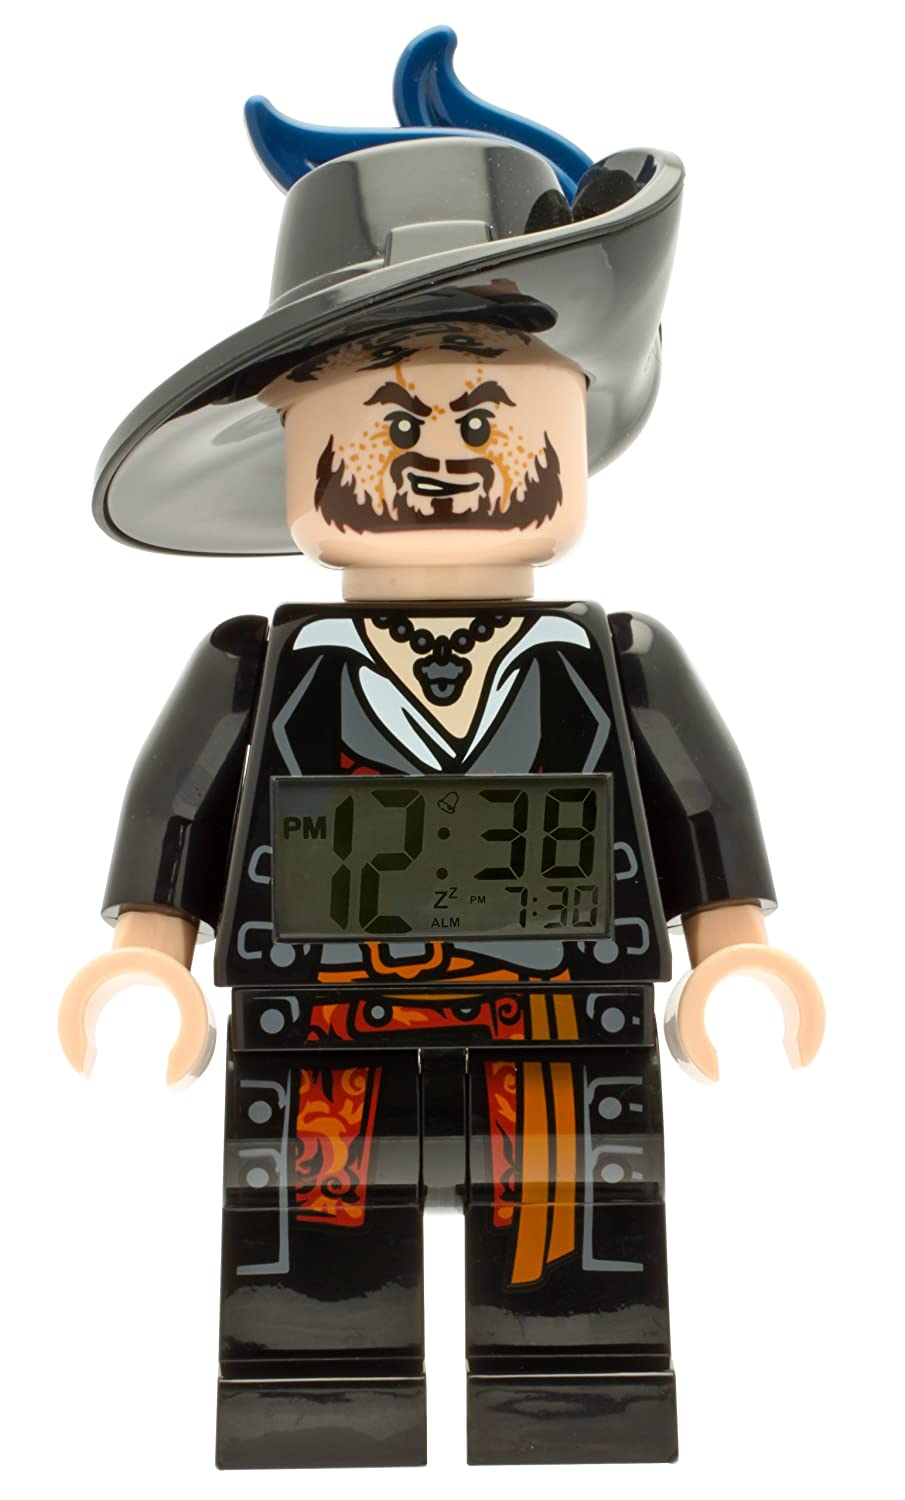 LEGO Pirates of Caribean Barbossa die Figur Uhr